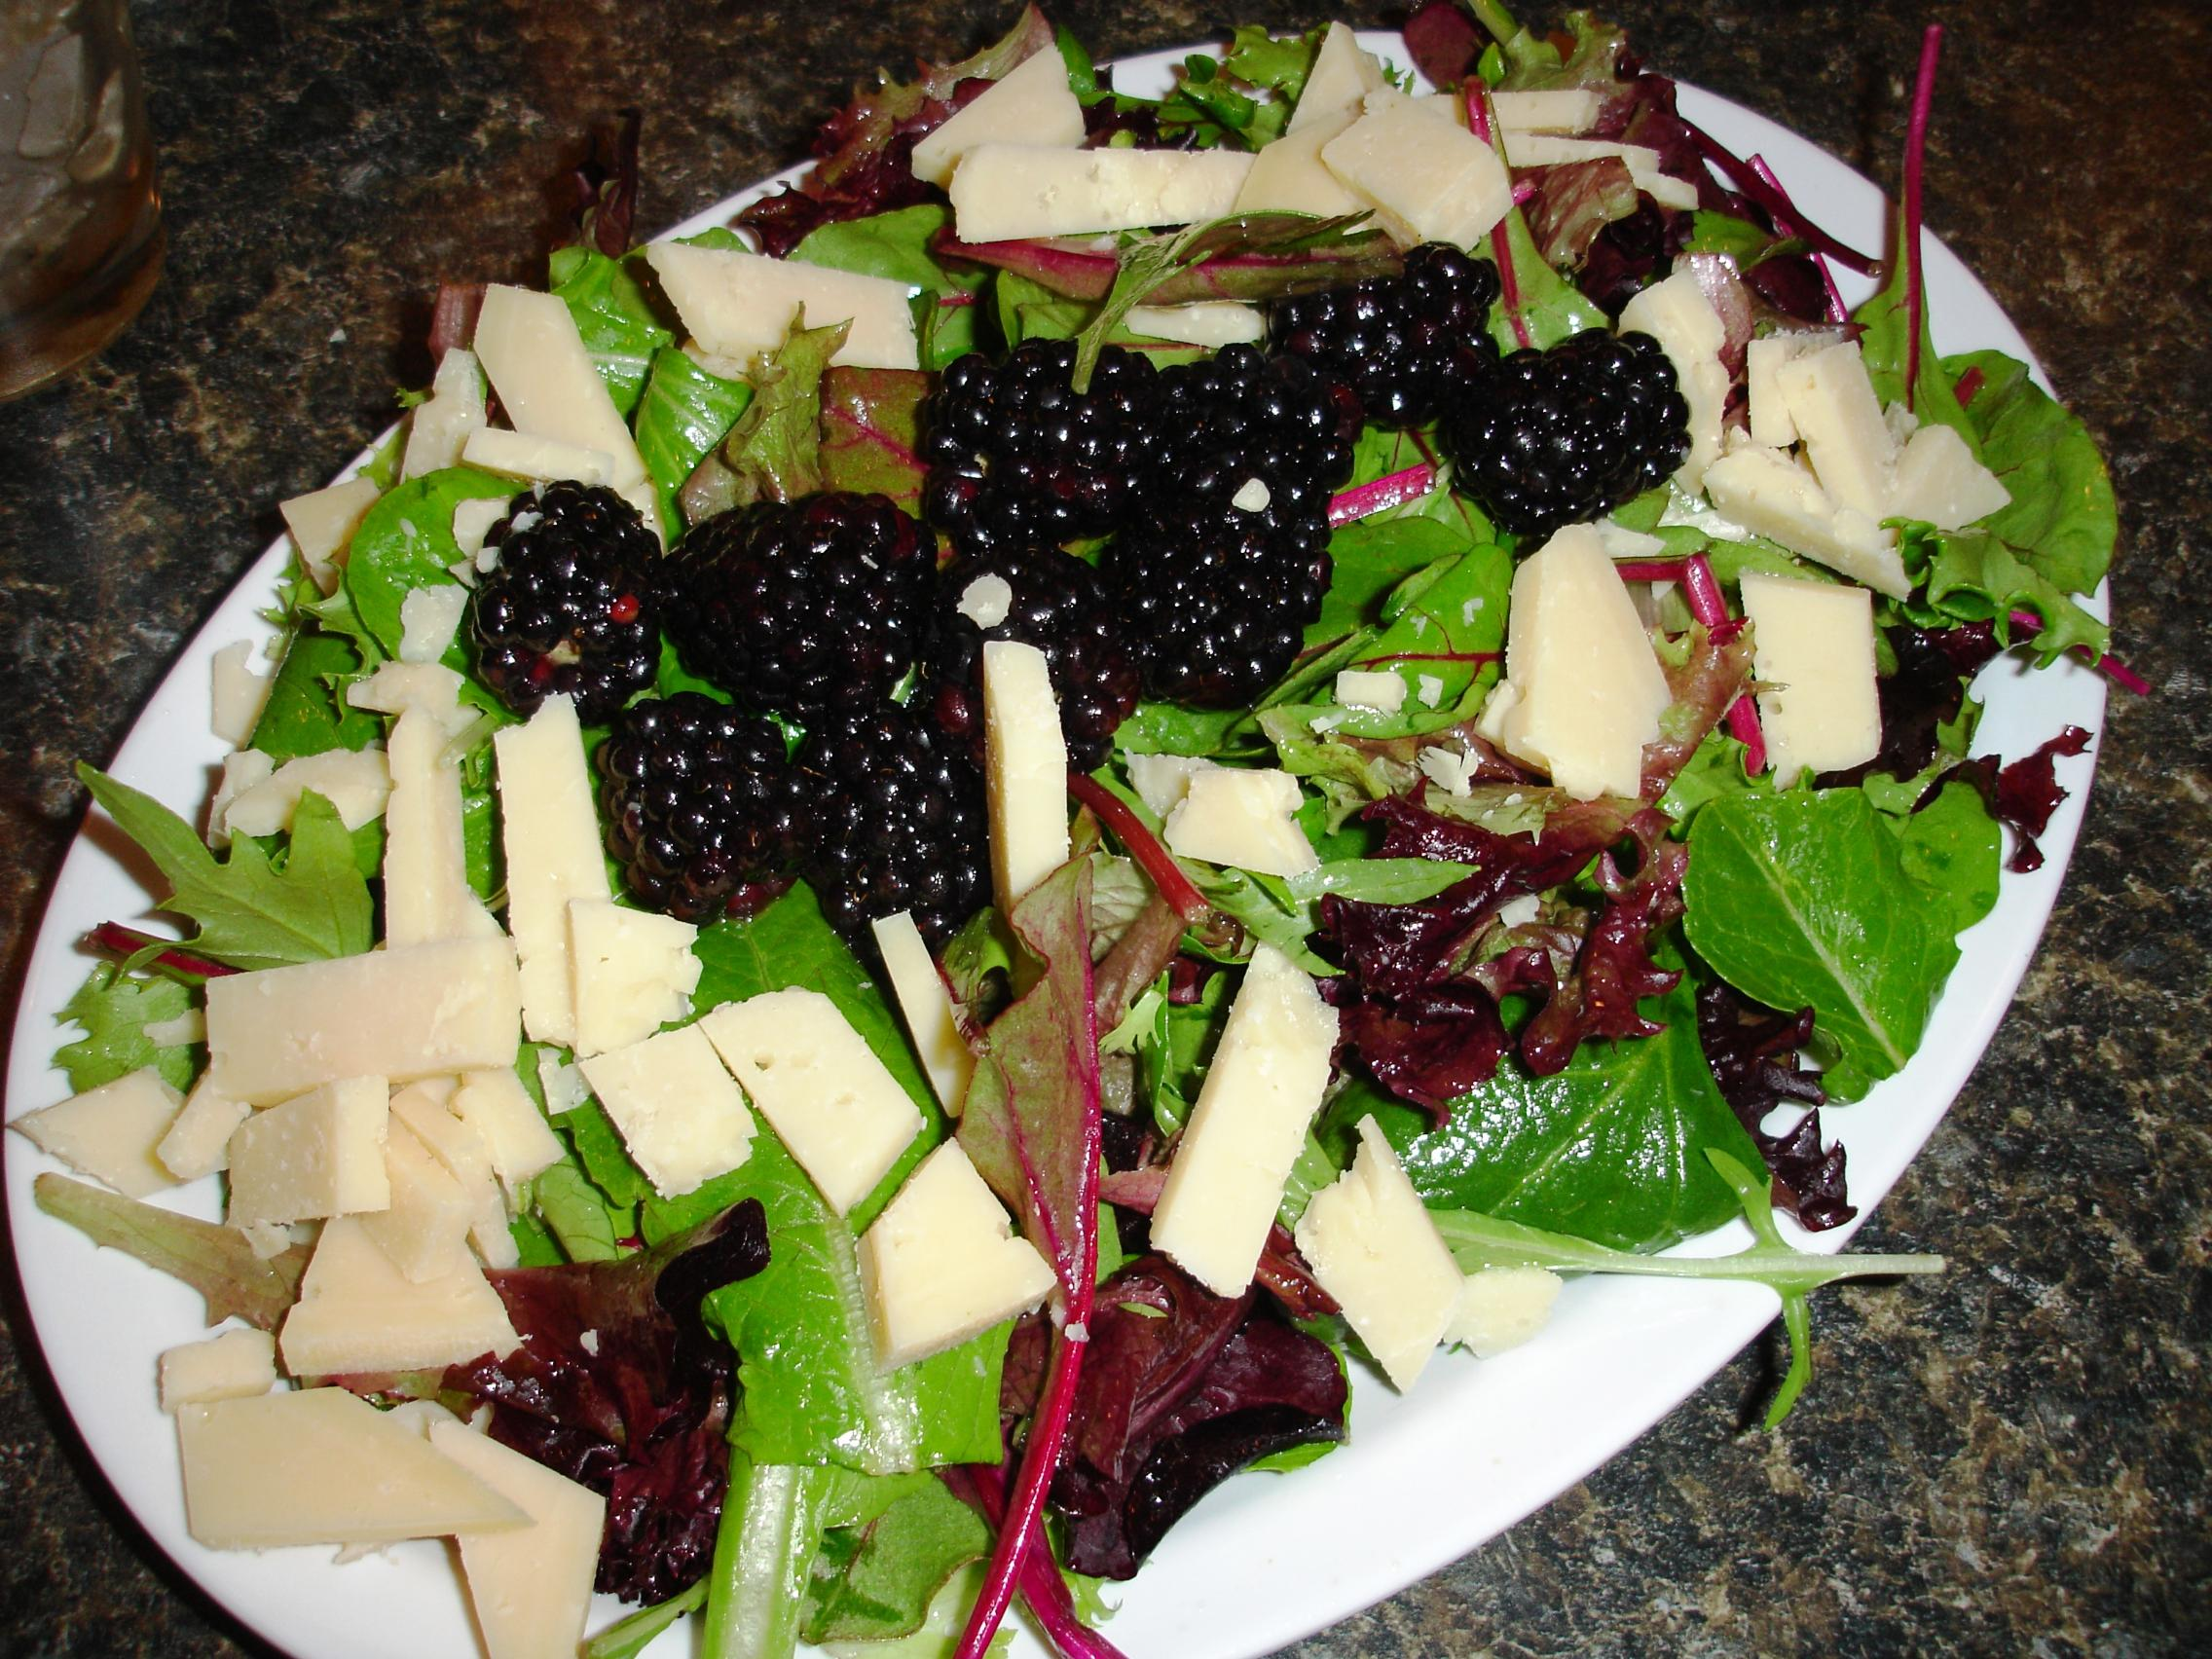 Salads vary with the season, like this one generously garnished with fresh, ripe blackberries.